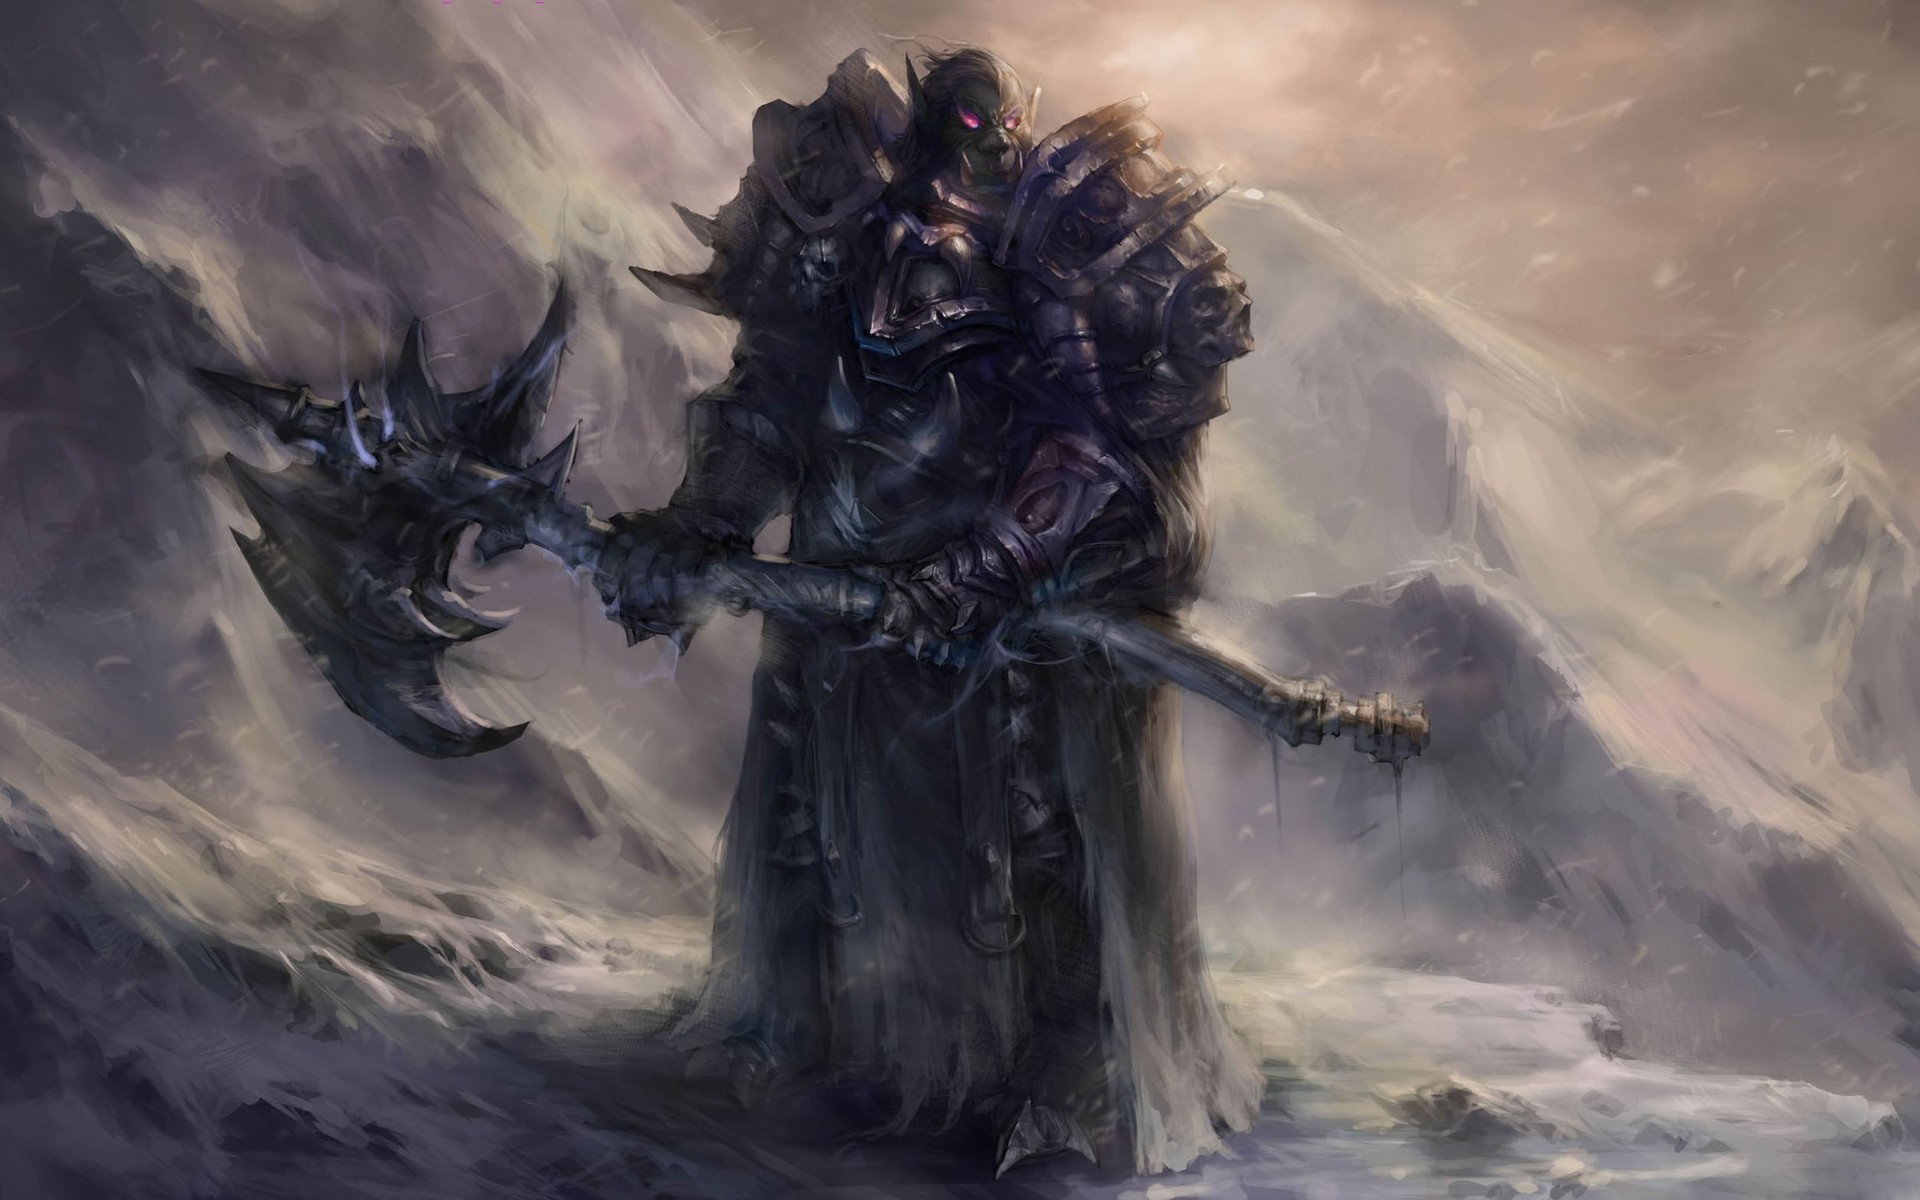 11665-death-knight-world-of-warcraft-1920x1200-game-wallpaper